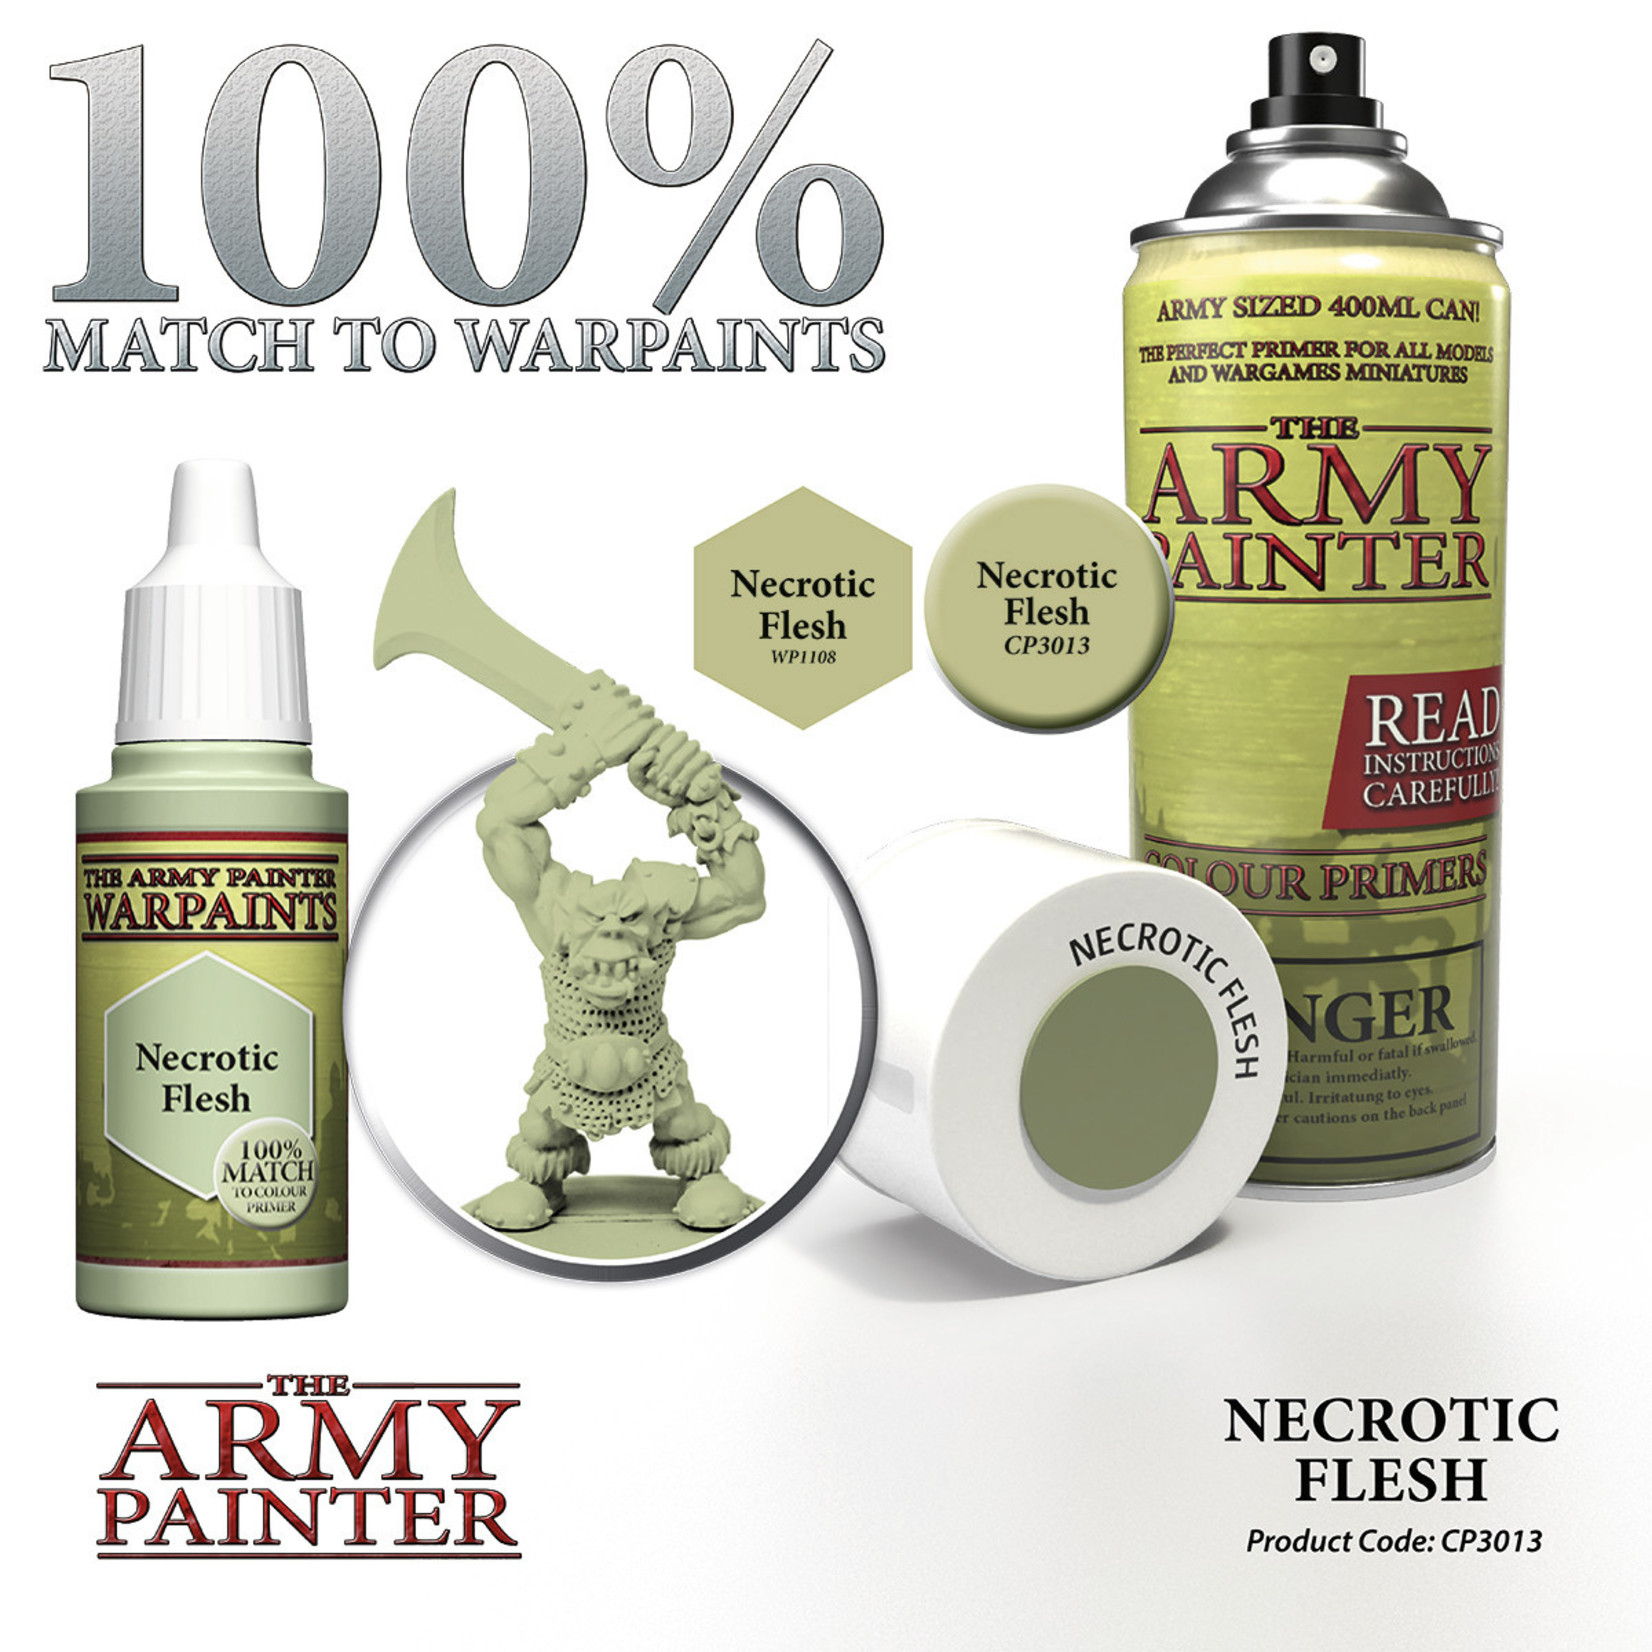 The Army Painter Color Primer Necrotic Flesh